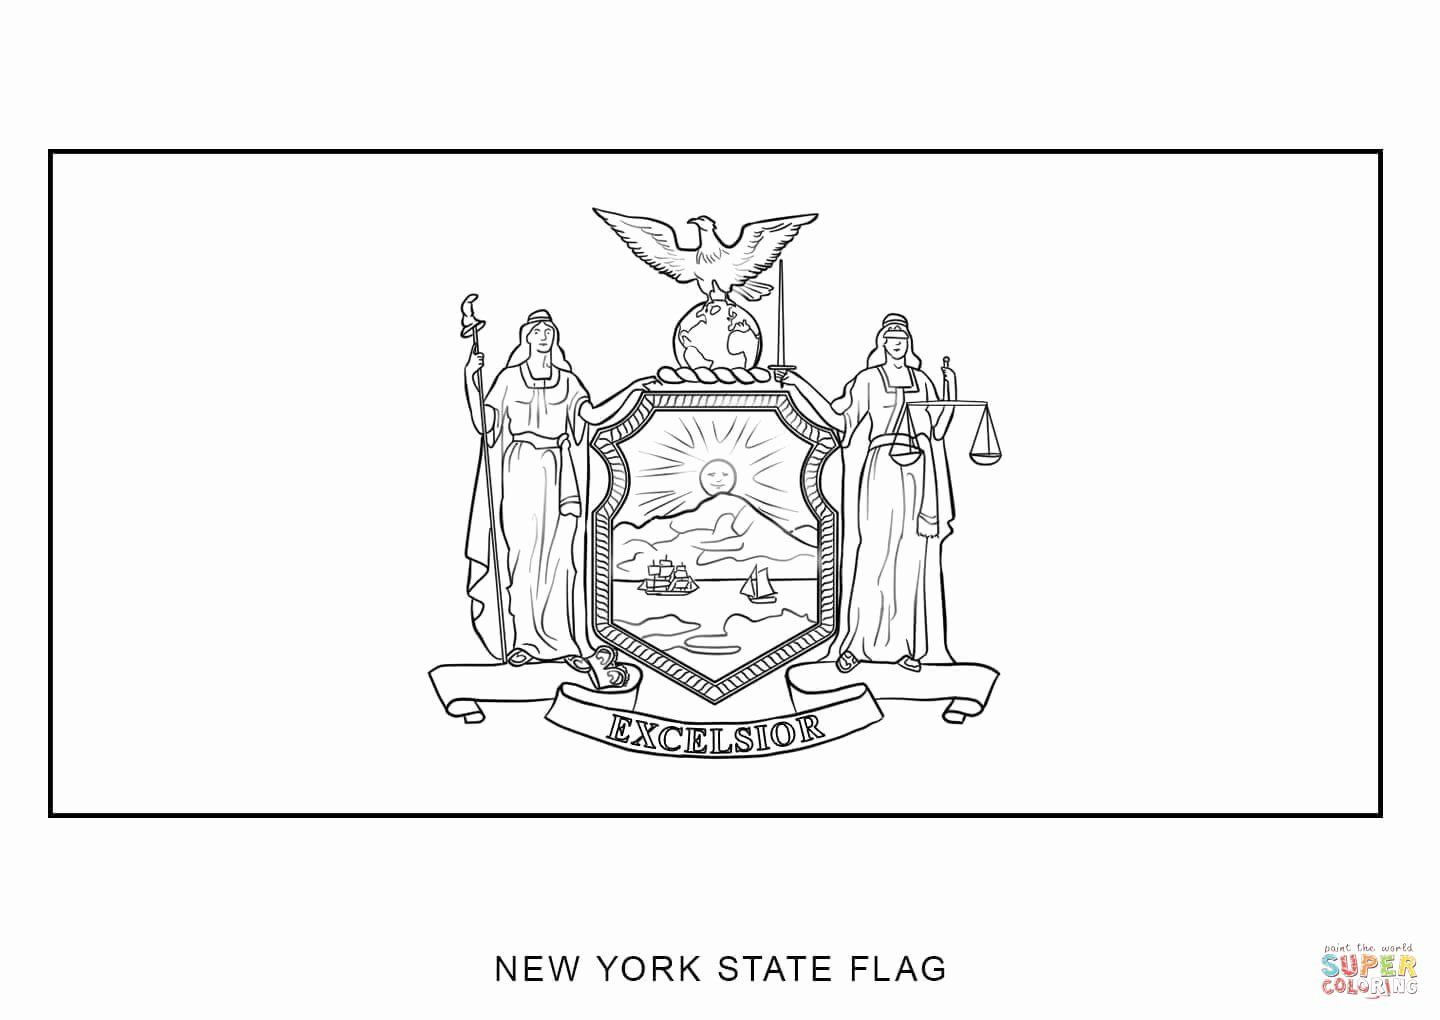 California Flag Coloring Pages Elegant Six Flags California Pages Coloring Pages Flag Coloring Pages American Flag Coloring Page Coloring Pages